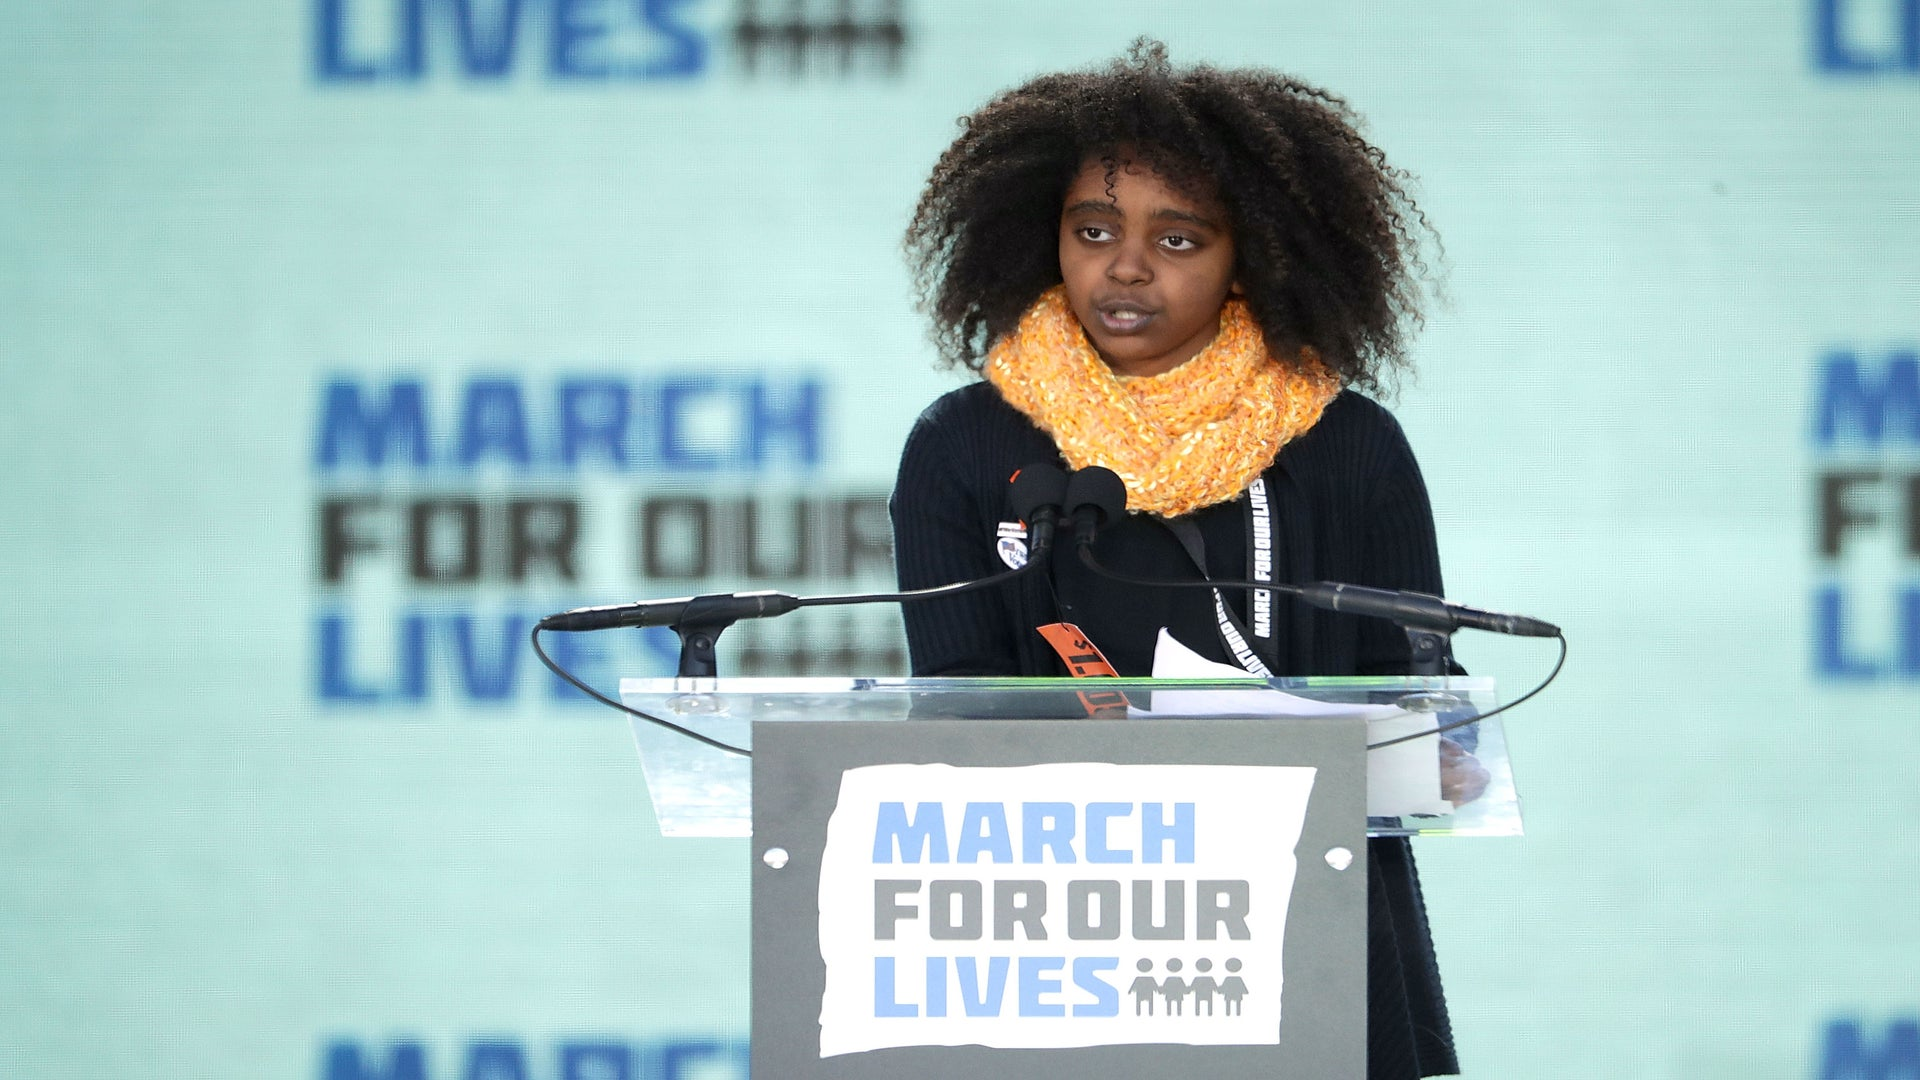 Fifth Grader Naomi Wadler Reminds 'March For Our Lives' Rally To Honor Black Girls Too